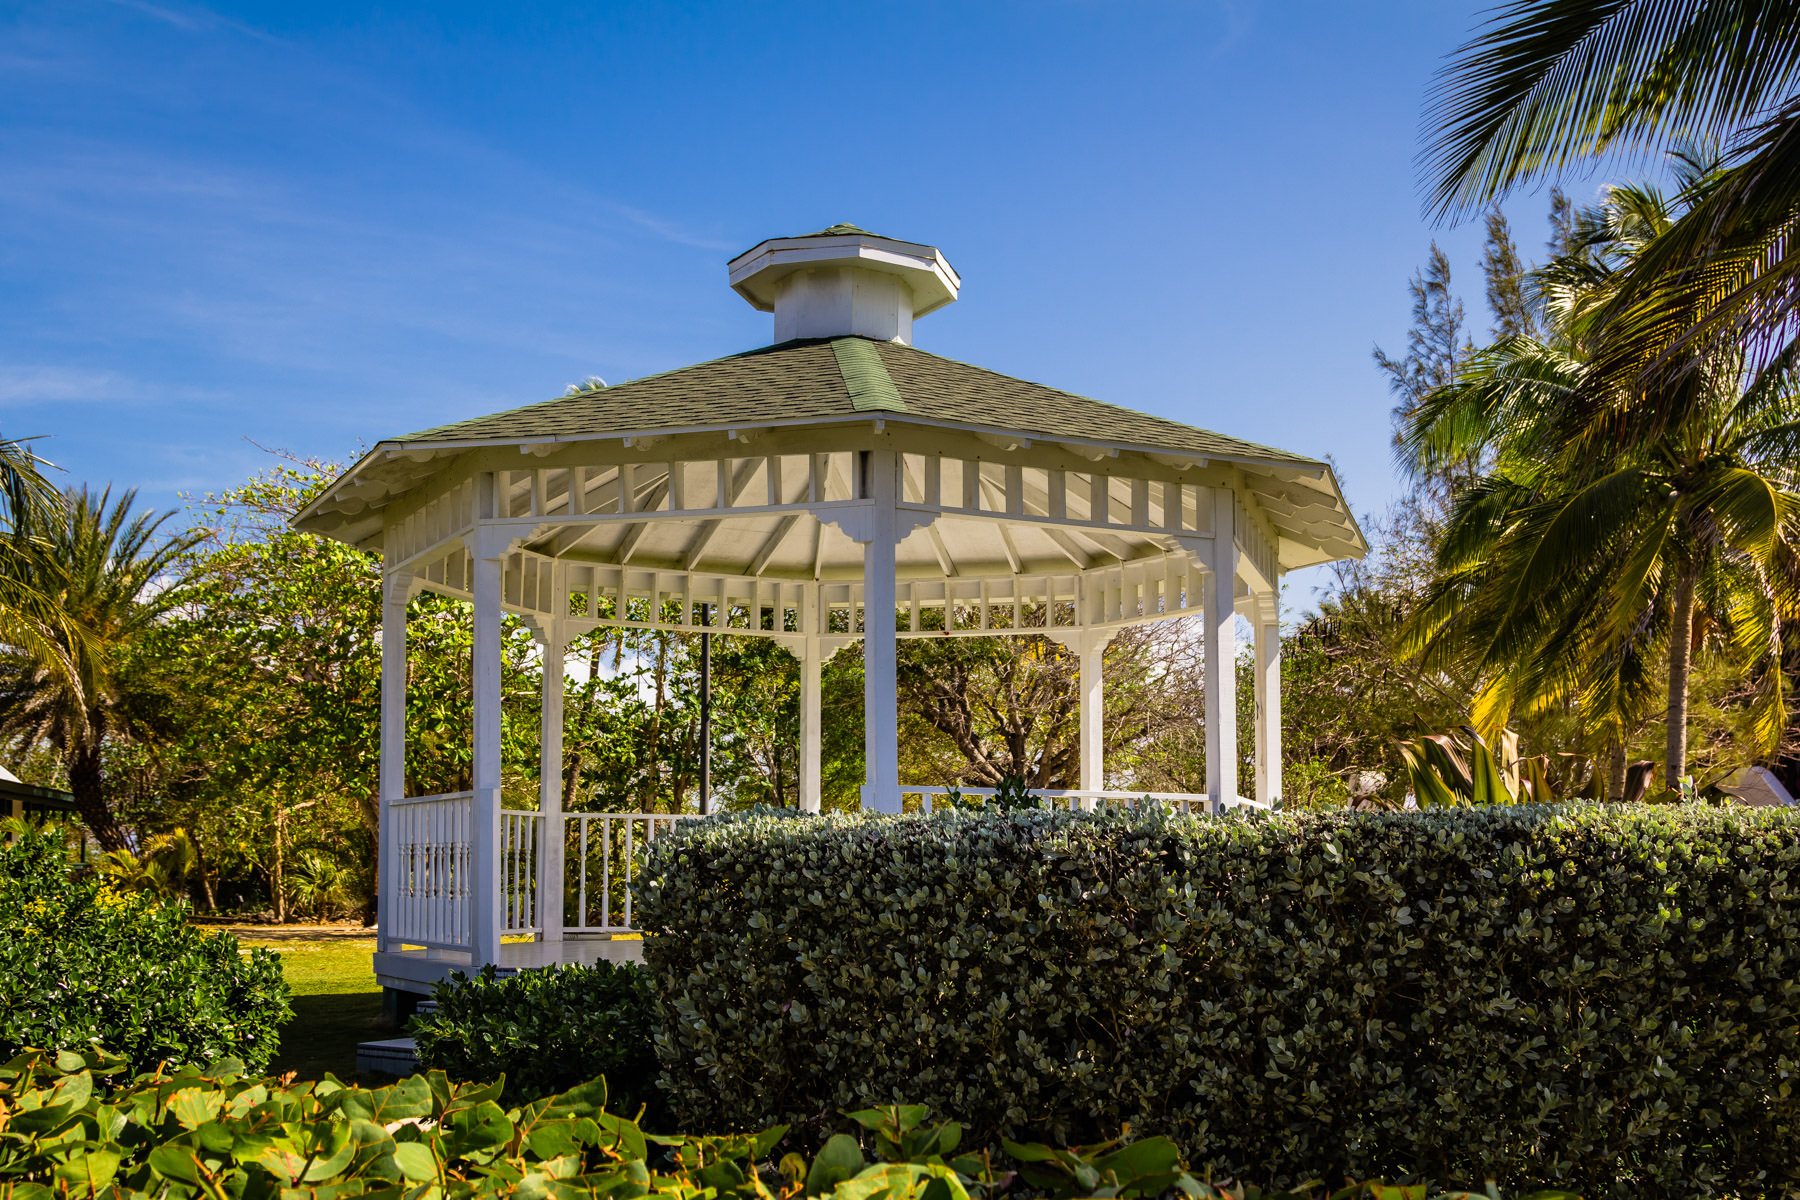 A gazebo in the gardens of the Pedro St. James National Historic Site—home of the oldest building in the Cayman Islands—in George Town, Grand Cayman